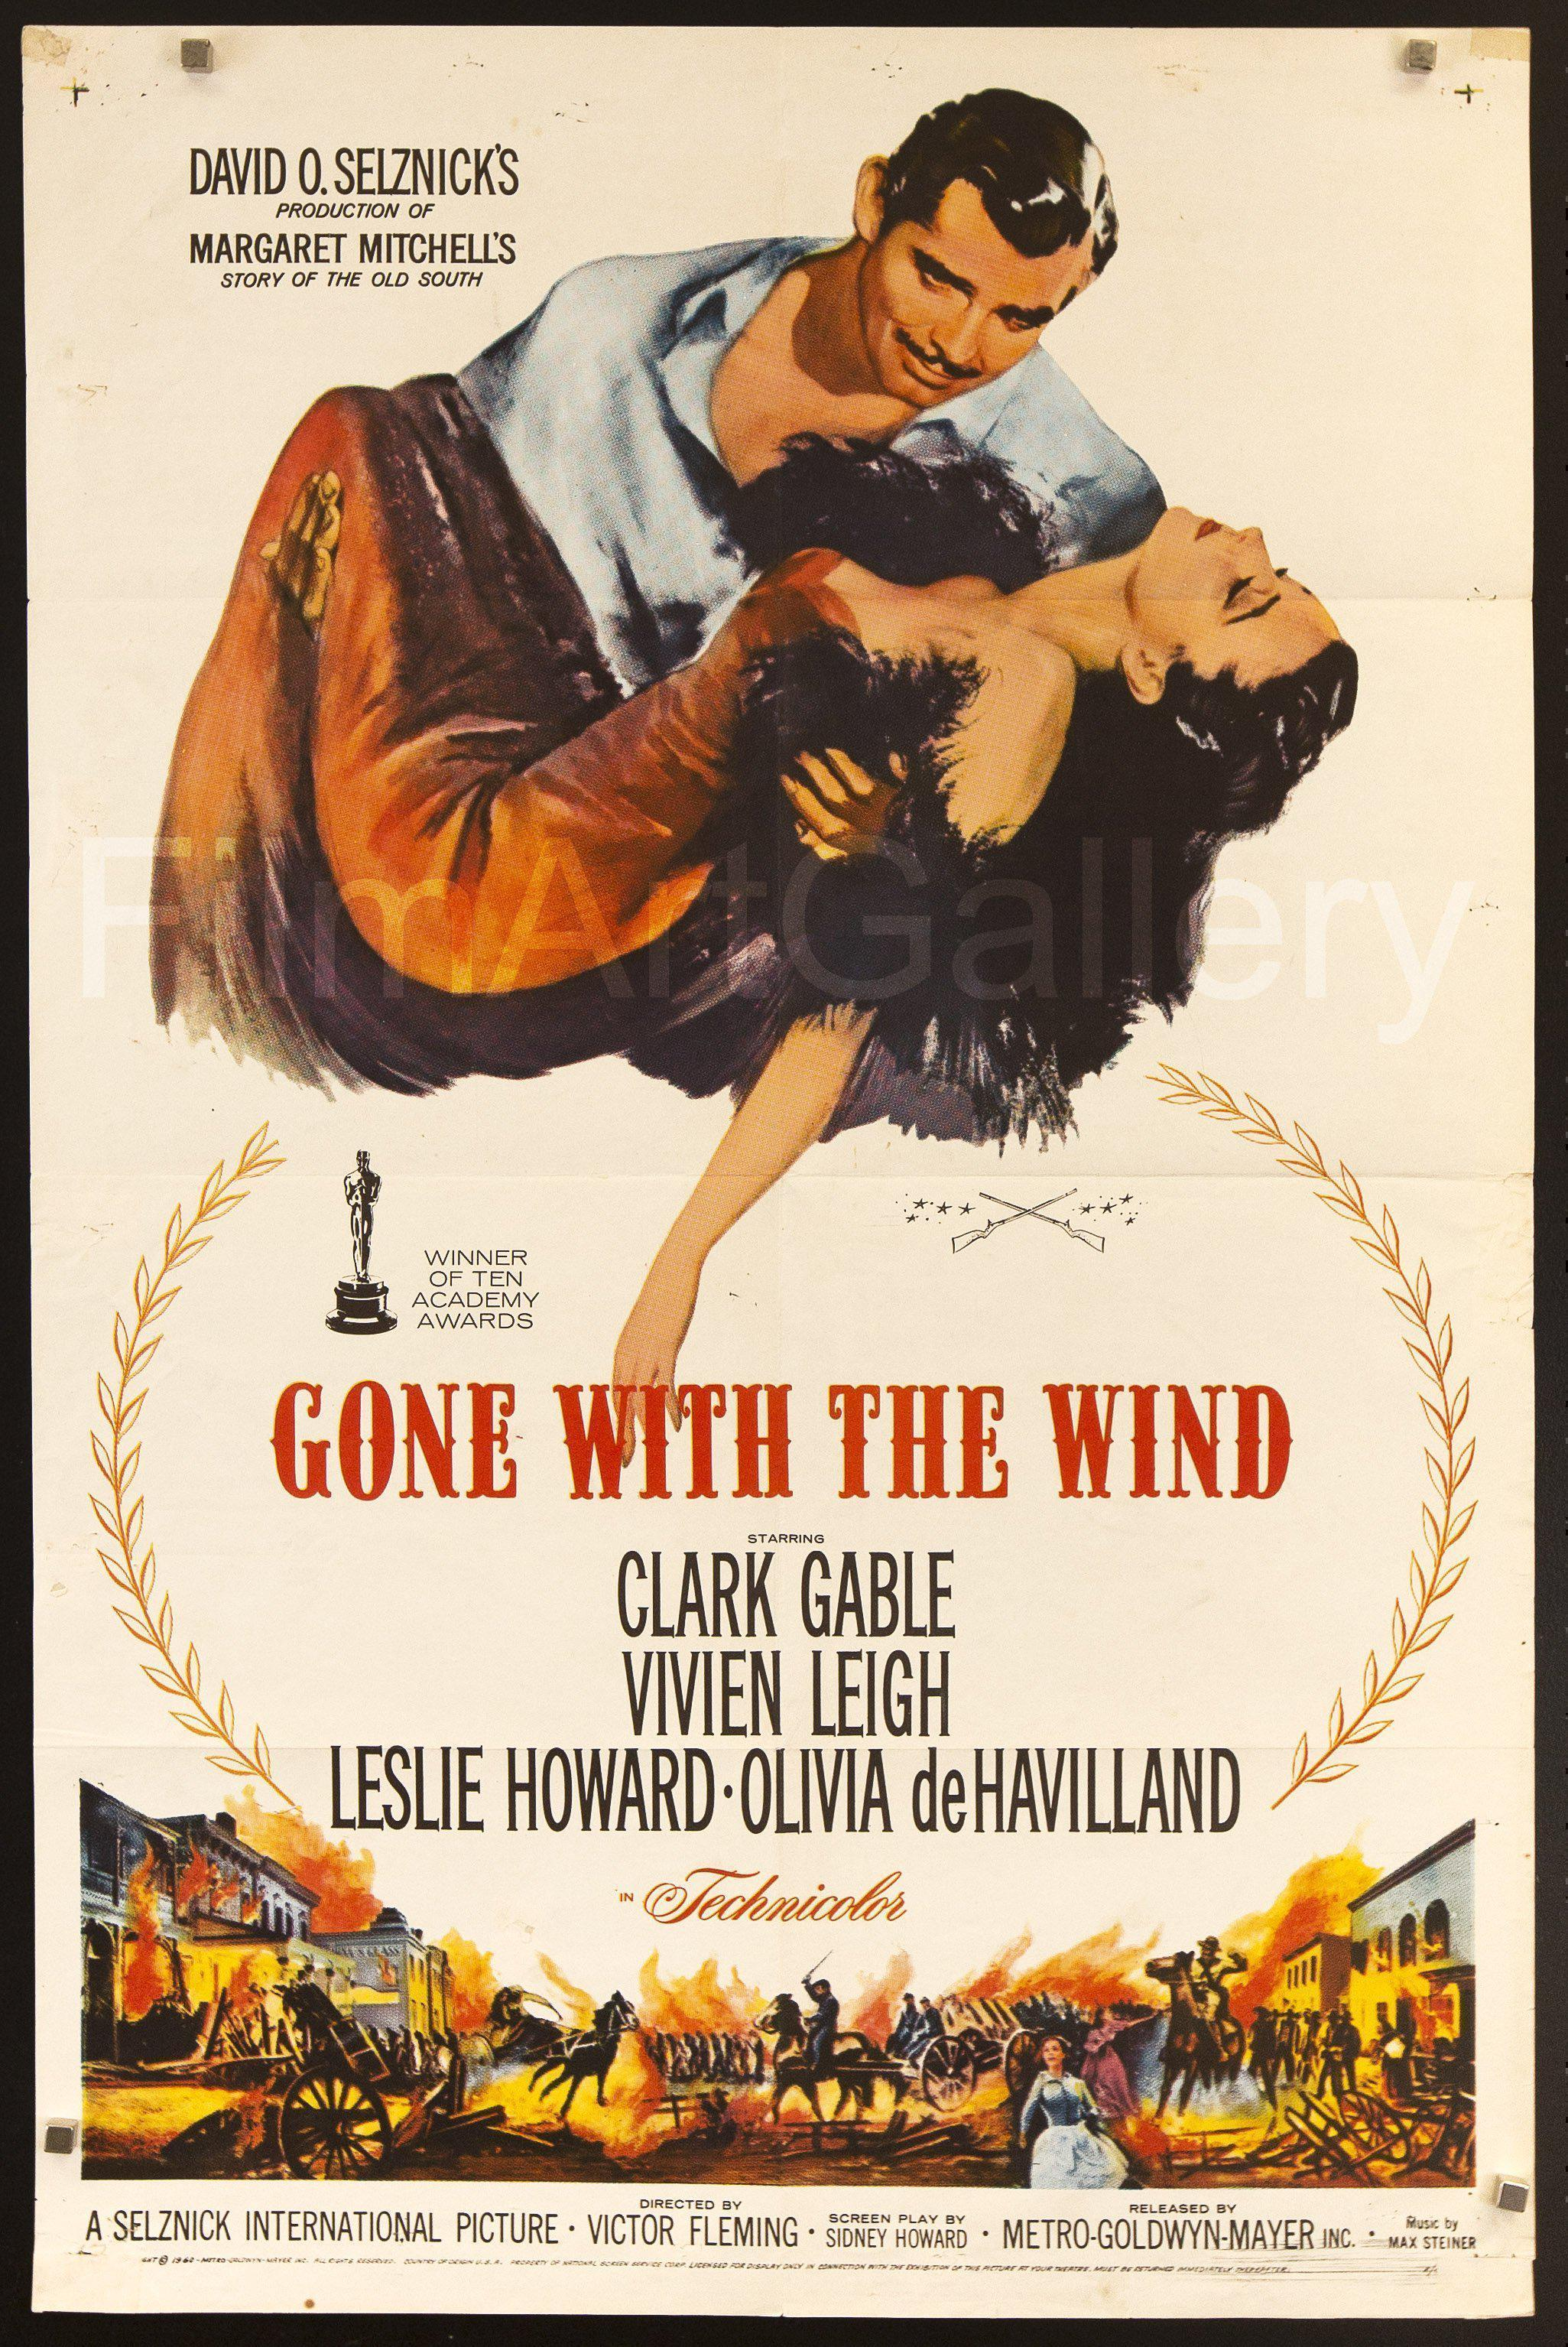 gone-with-the-wind-vintage-movie-poster-original-1-sheet-27x41_034bd09e-d34d-4605-b62c-a33f6b1...jpg